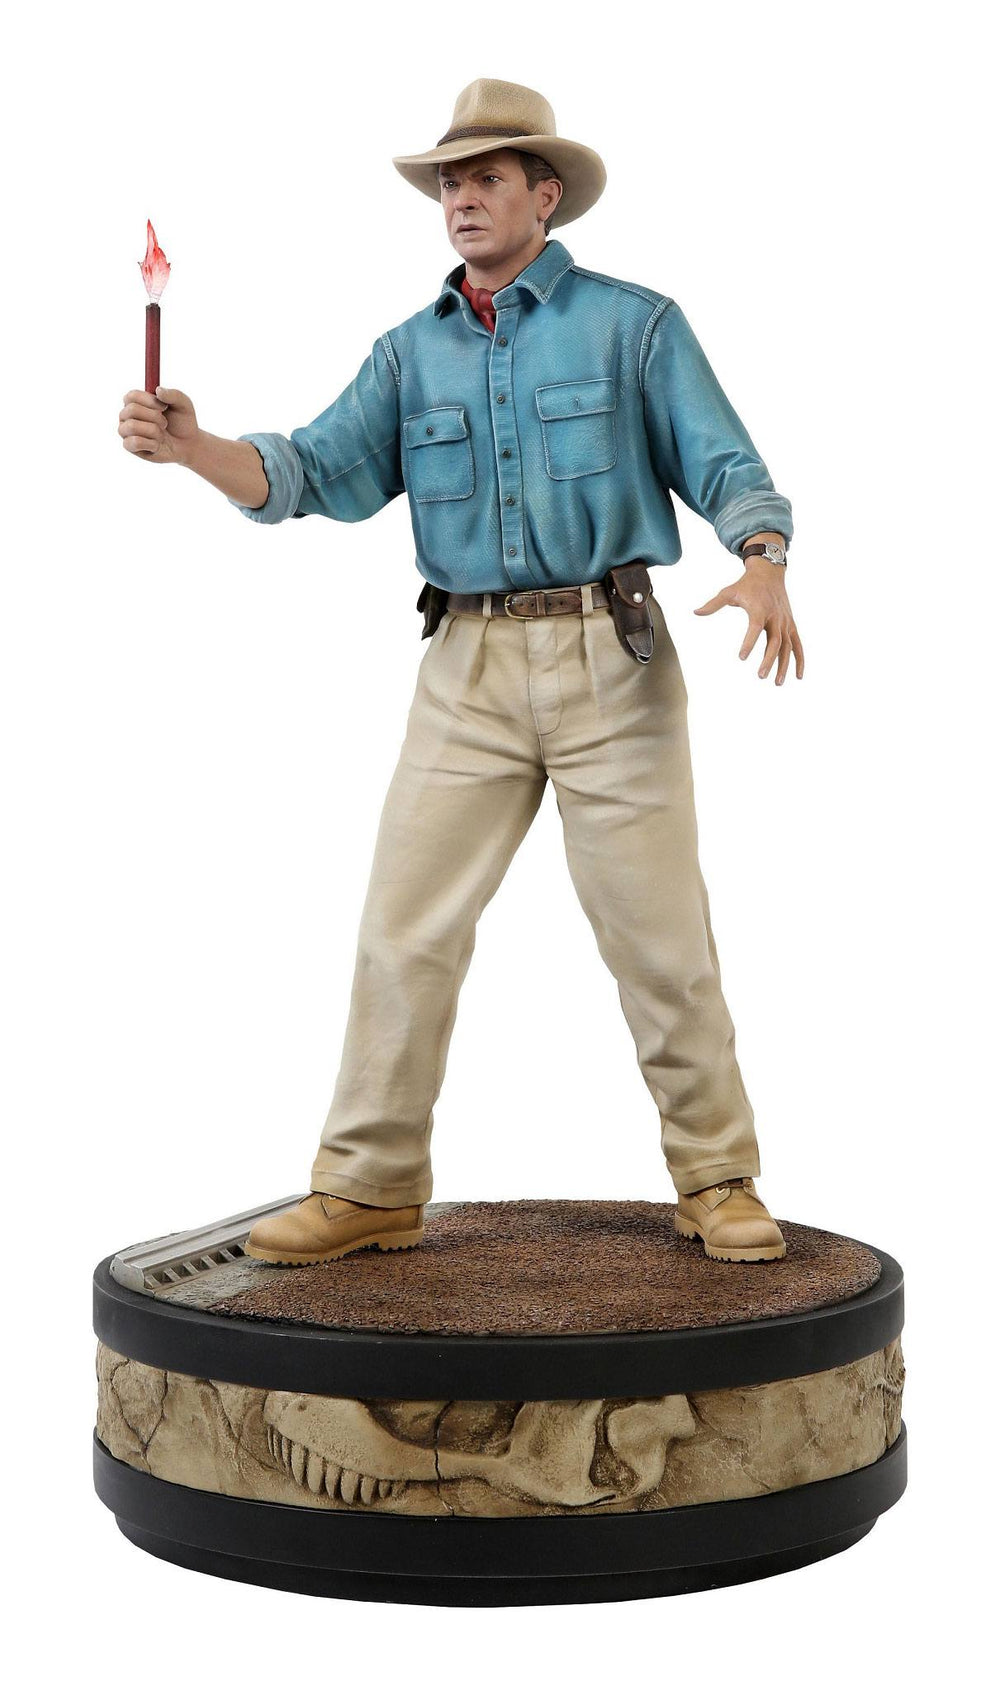 Chronicle Collectibles Jurassic Park Dr. Alan Grant 1/4 Statue